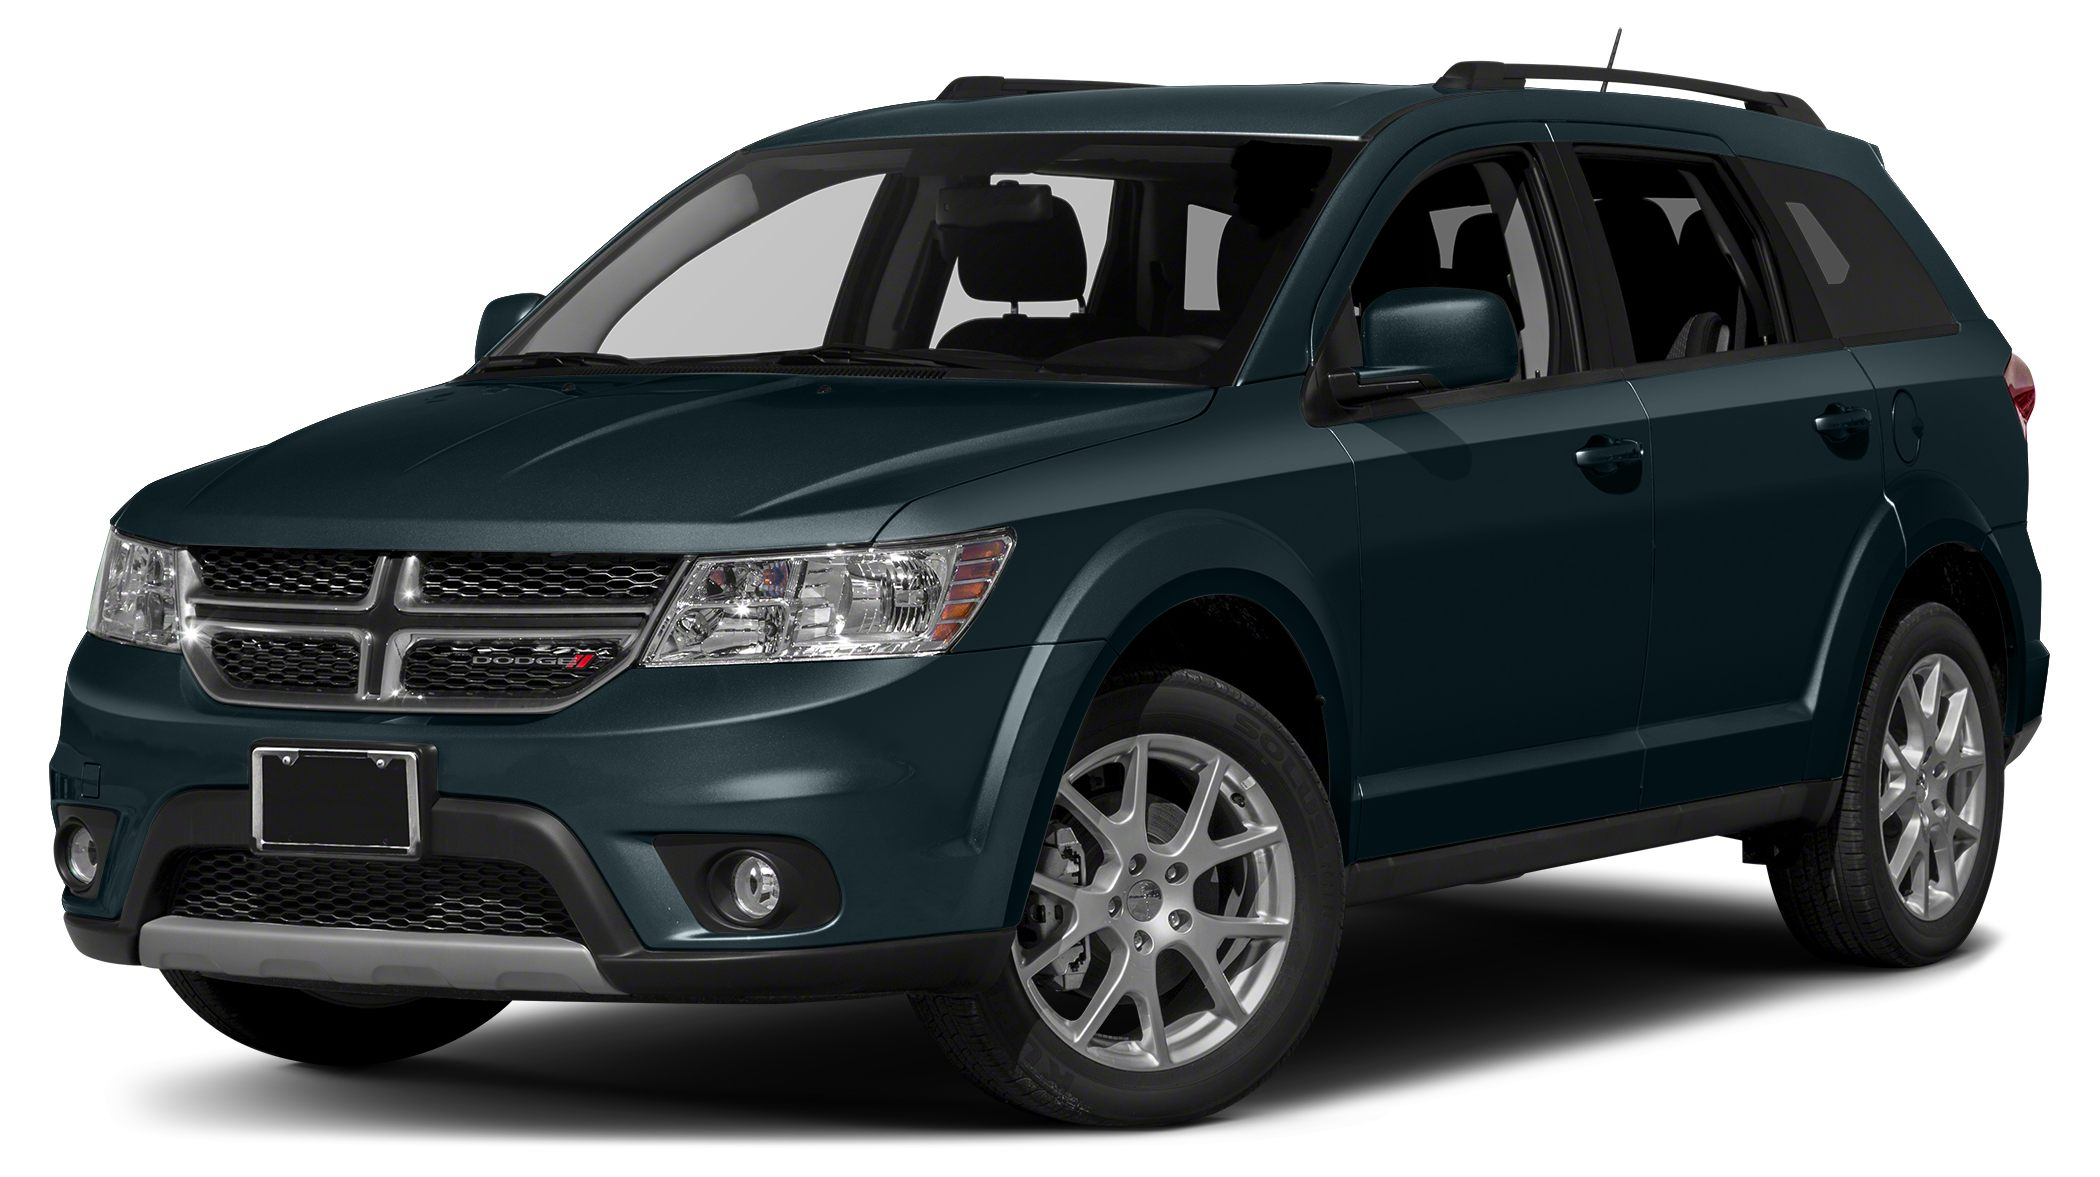 2015 Dodge Journey SXT EPA 26 MPG Hwy19 MPG City Pitch Black Clearcoat exterior and Black interi